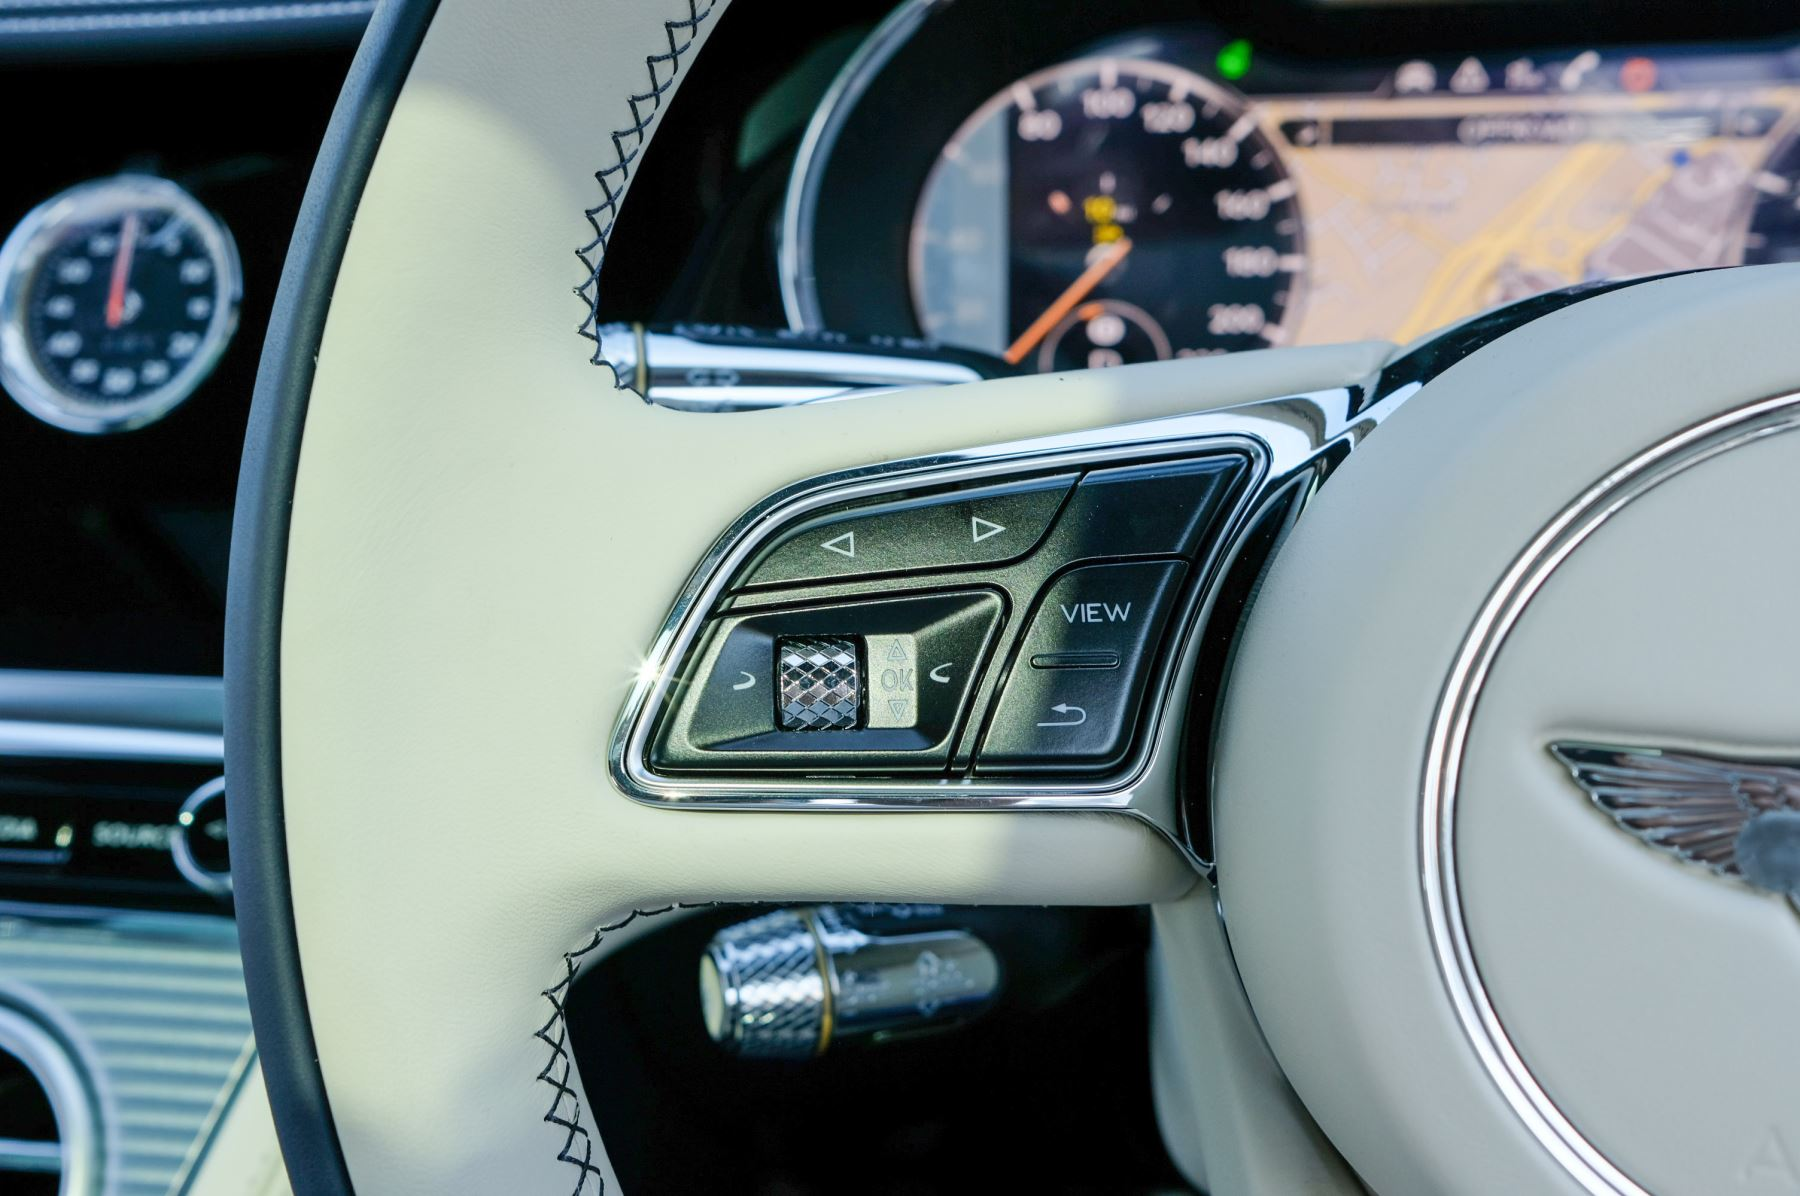 Bentley Continental GT 4.0 V8 Mulliner Edition 2dr Auto - City Specification - Panoramic Glass Roof image 23